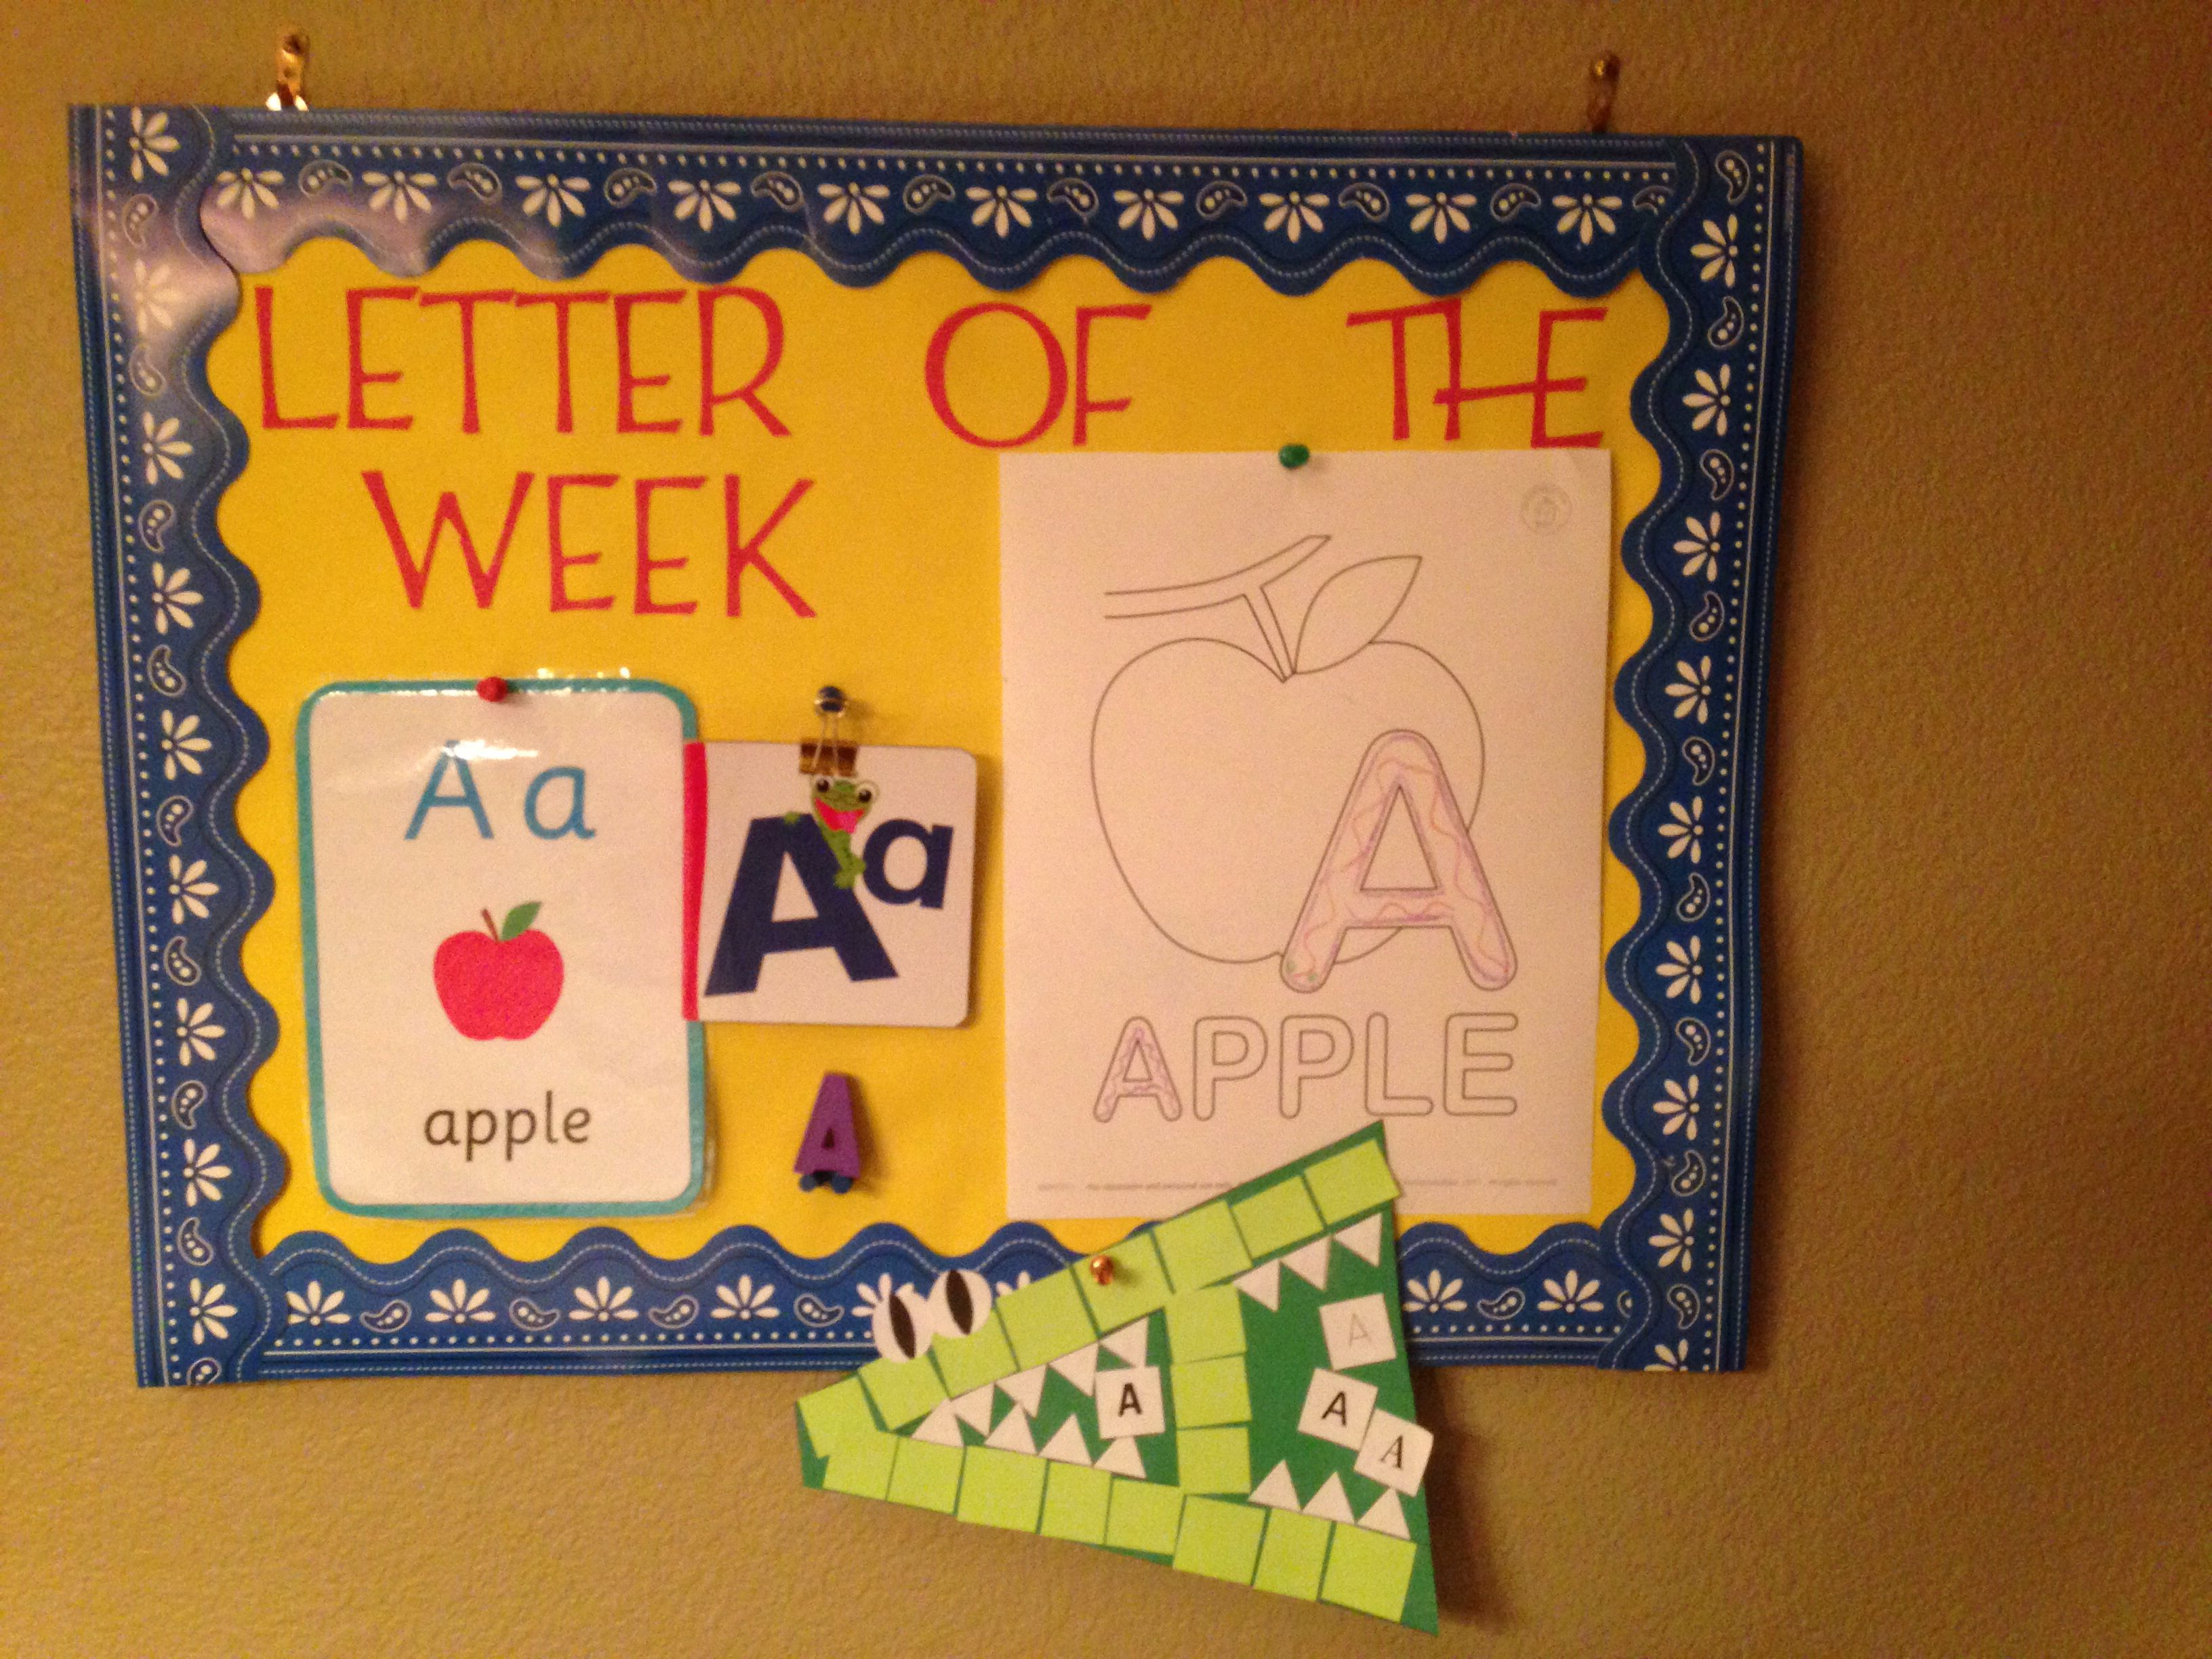 Small Bulletin Board In Dining Room So We Can Discuss The Letter